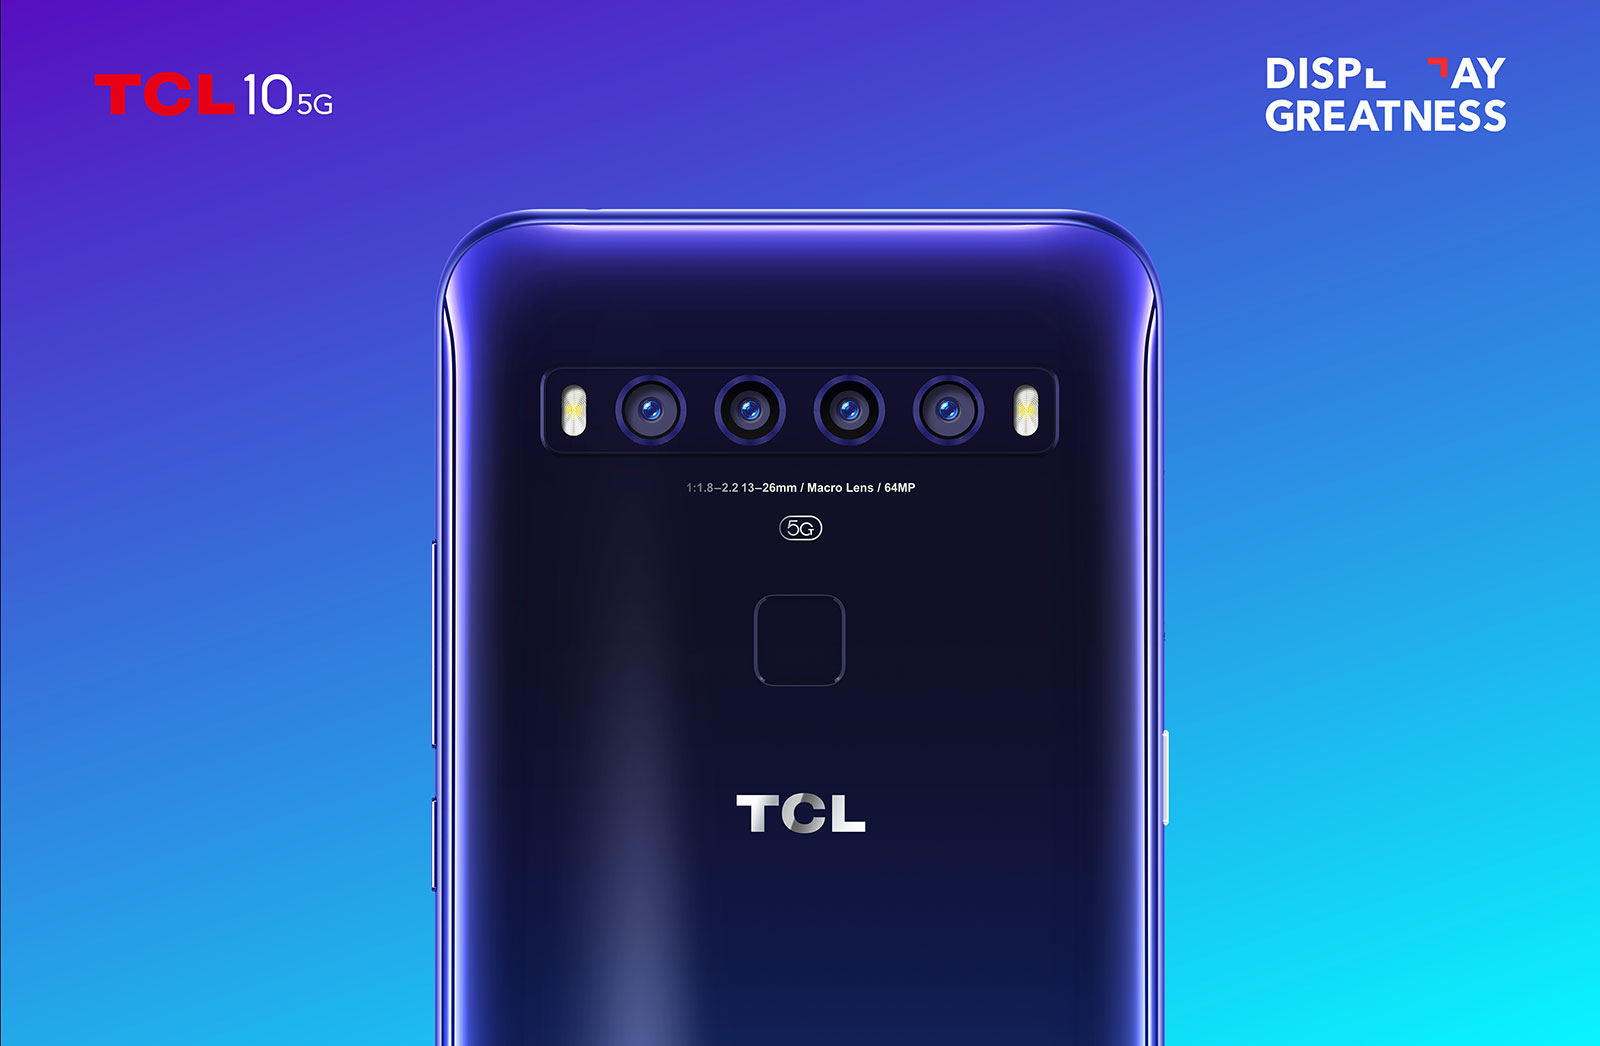 TCL 10 5G WIND revealed